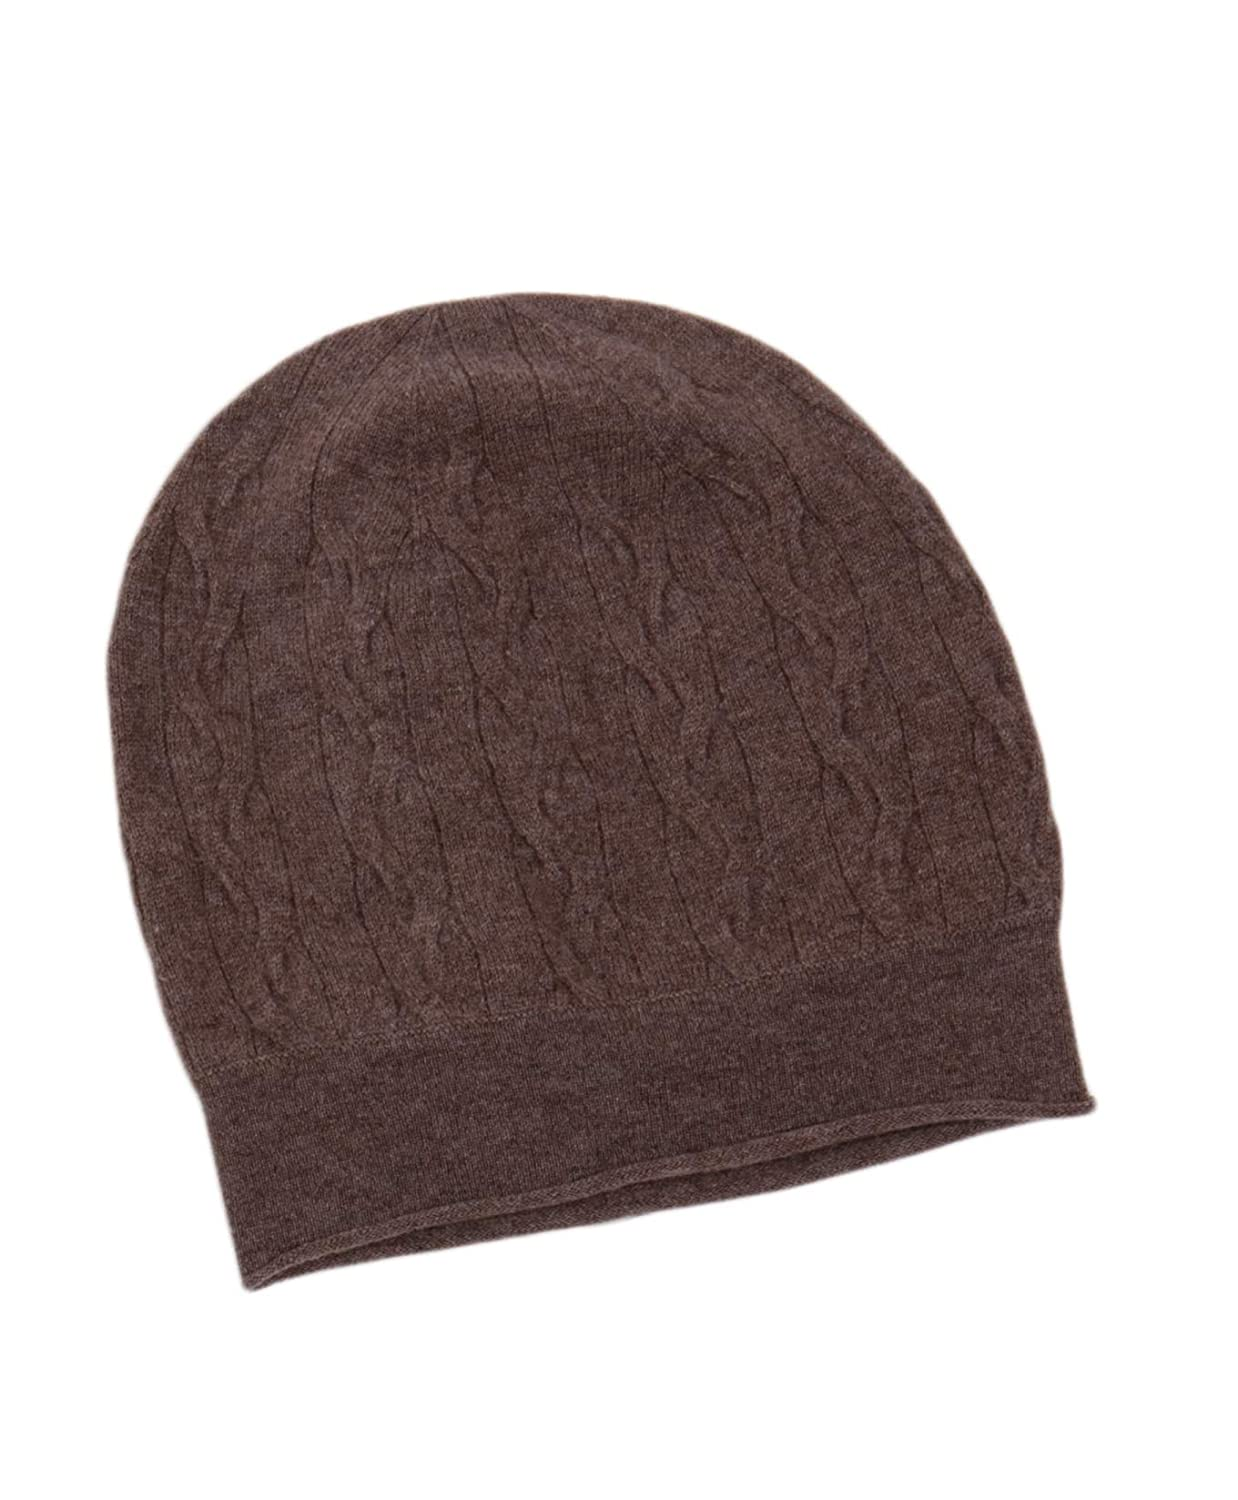 Brown LEBAC 100% Cashmere Hat Cable Knit Beanie